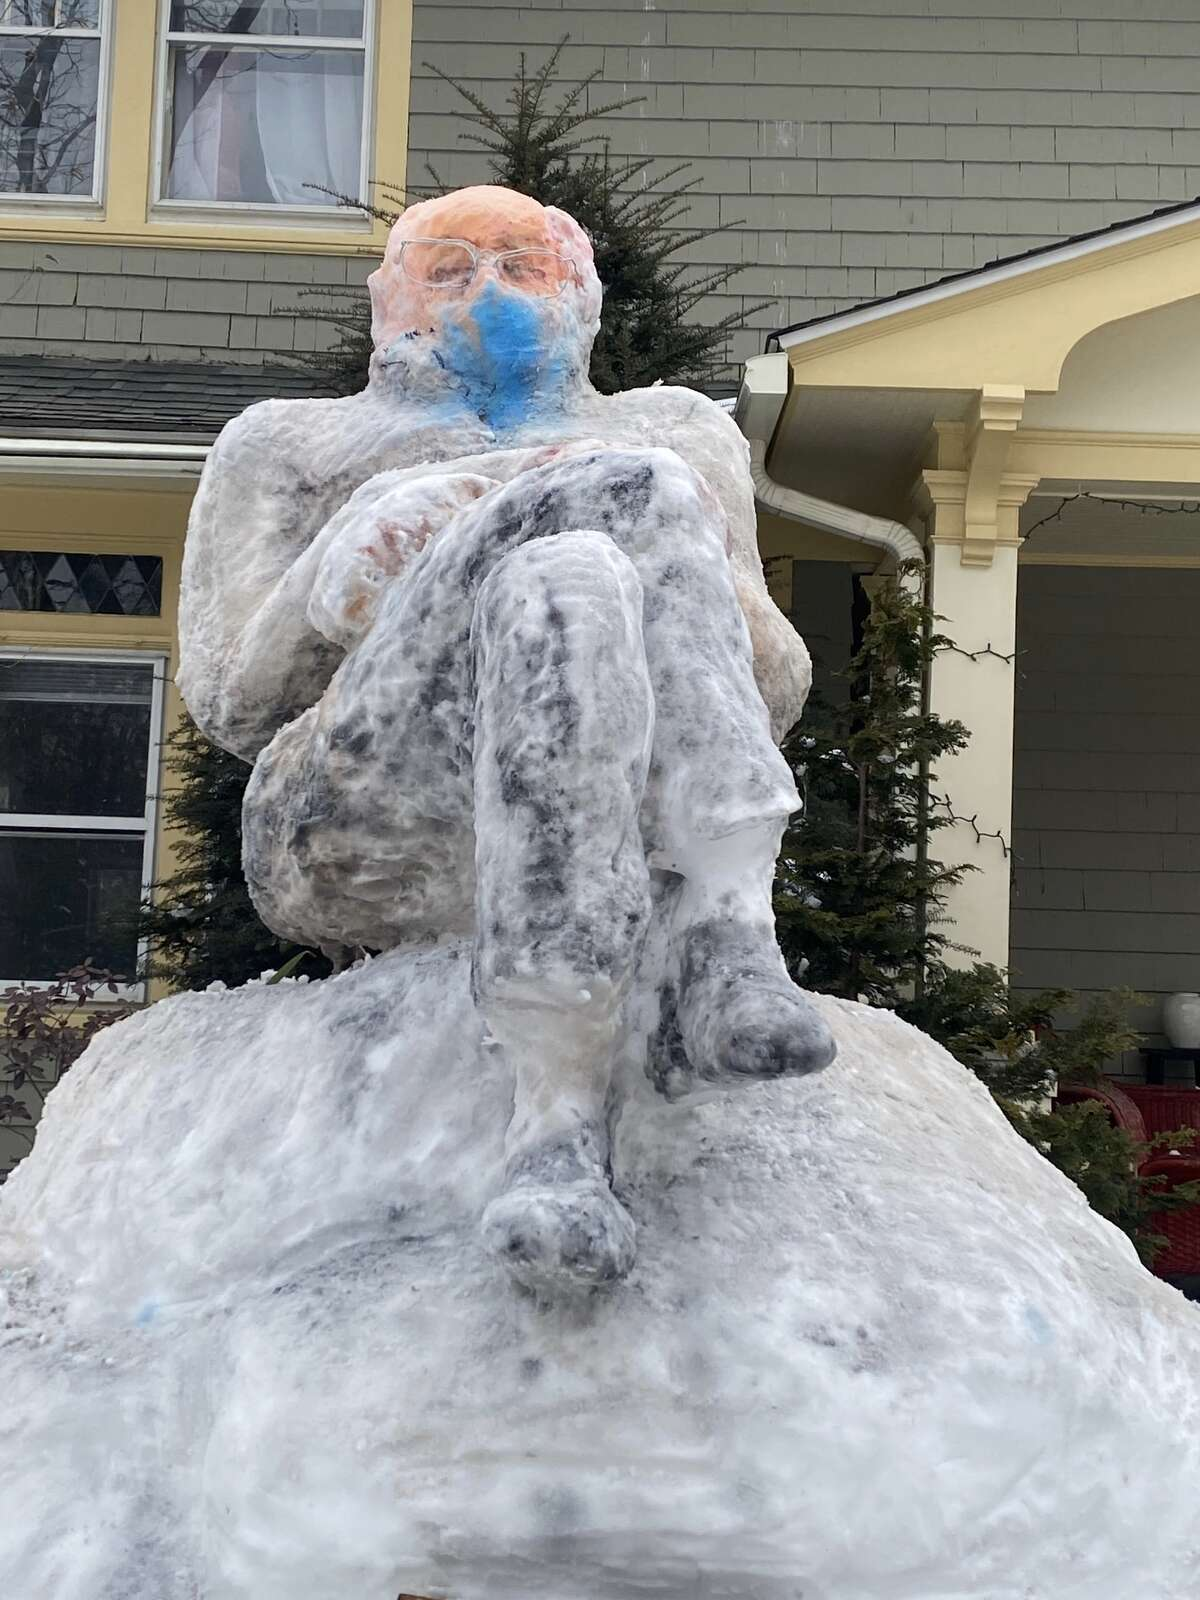 SnowBernie after he was painted. Instead of splicing the image of Sen. Bernie Sanders wearing mittens into a photo of a pizzeria or next to a beluga whale, David Sepulveda - a retired art instructor who said he worked in Stamford Public Schools for about 36 years - made his own masterpiece: A painted snow sculpture.